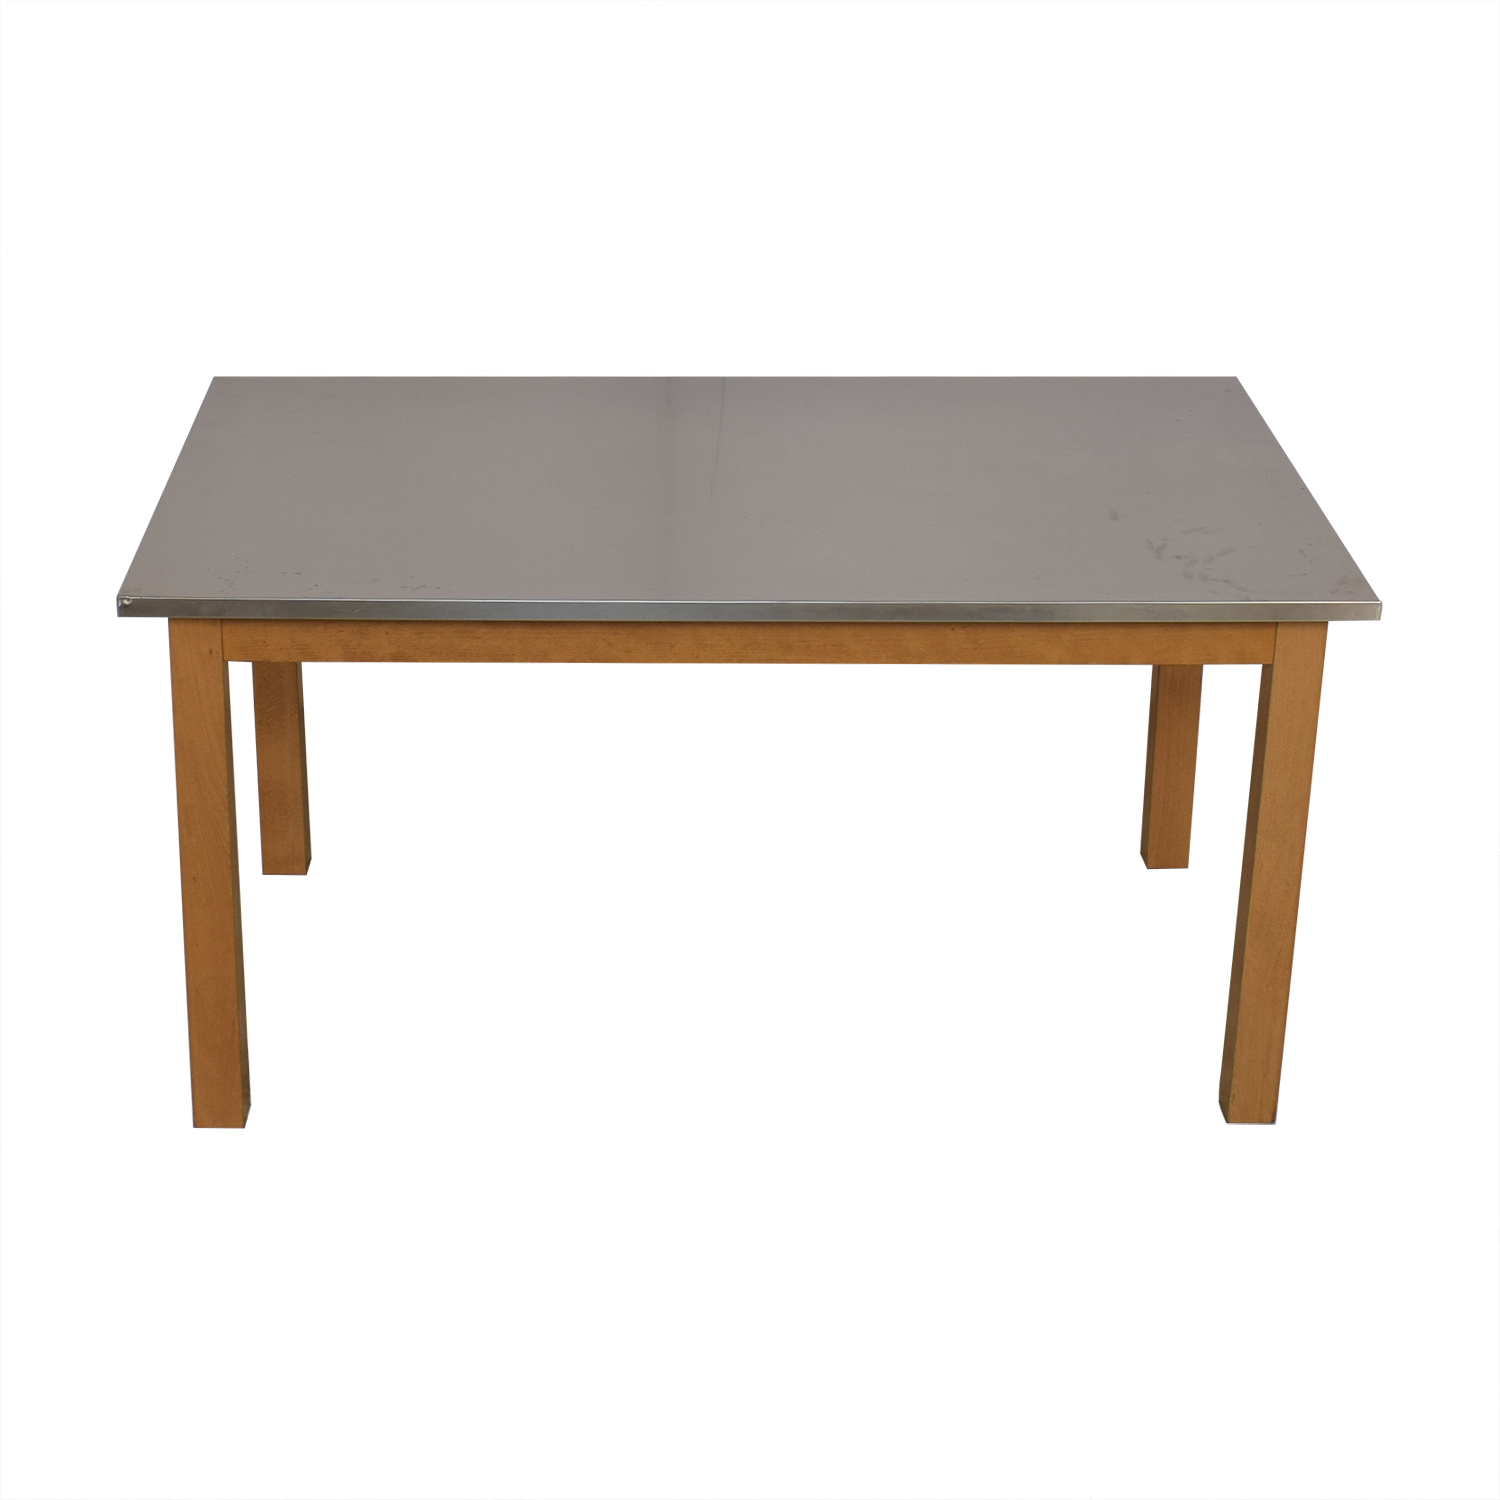 buy Pottery Barn Pottery Barn Dining Table online